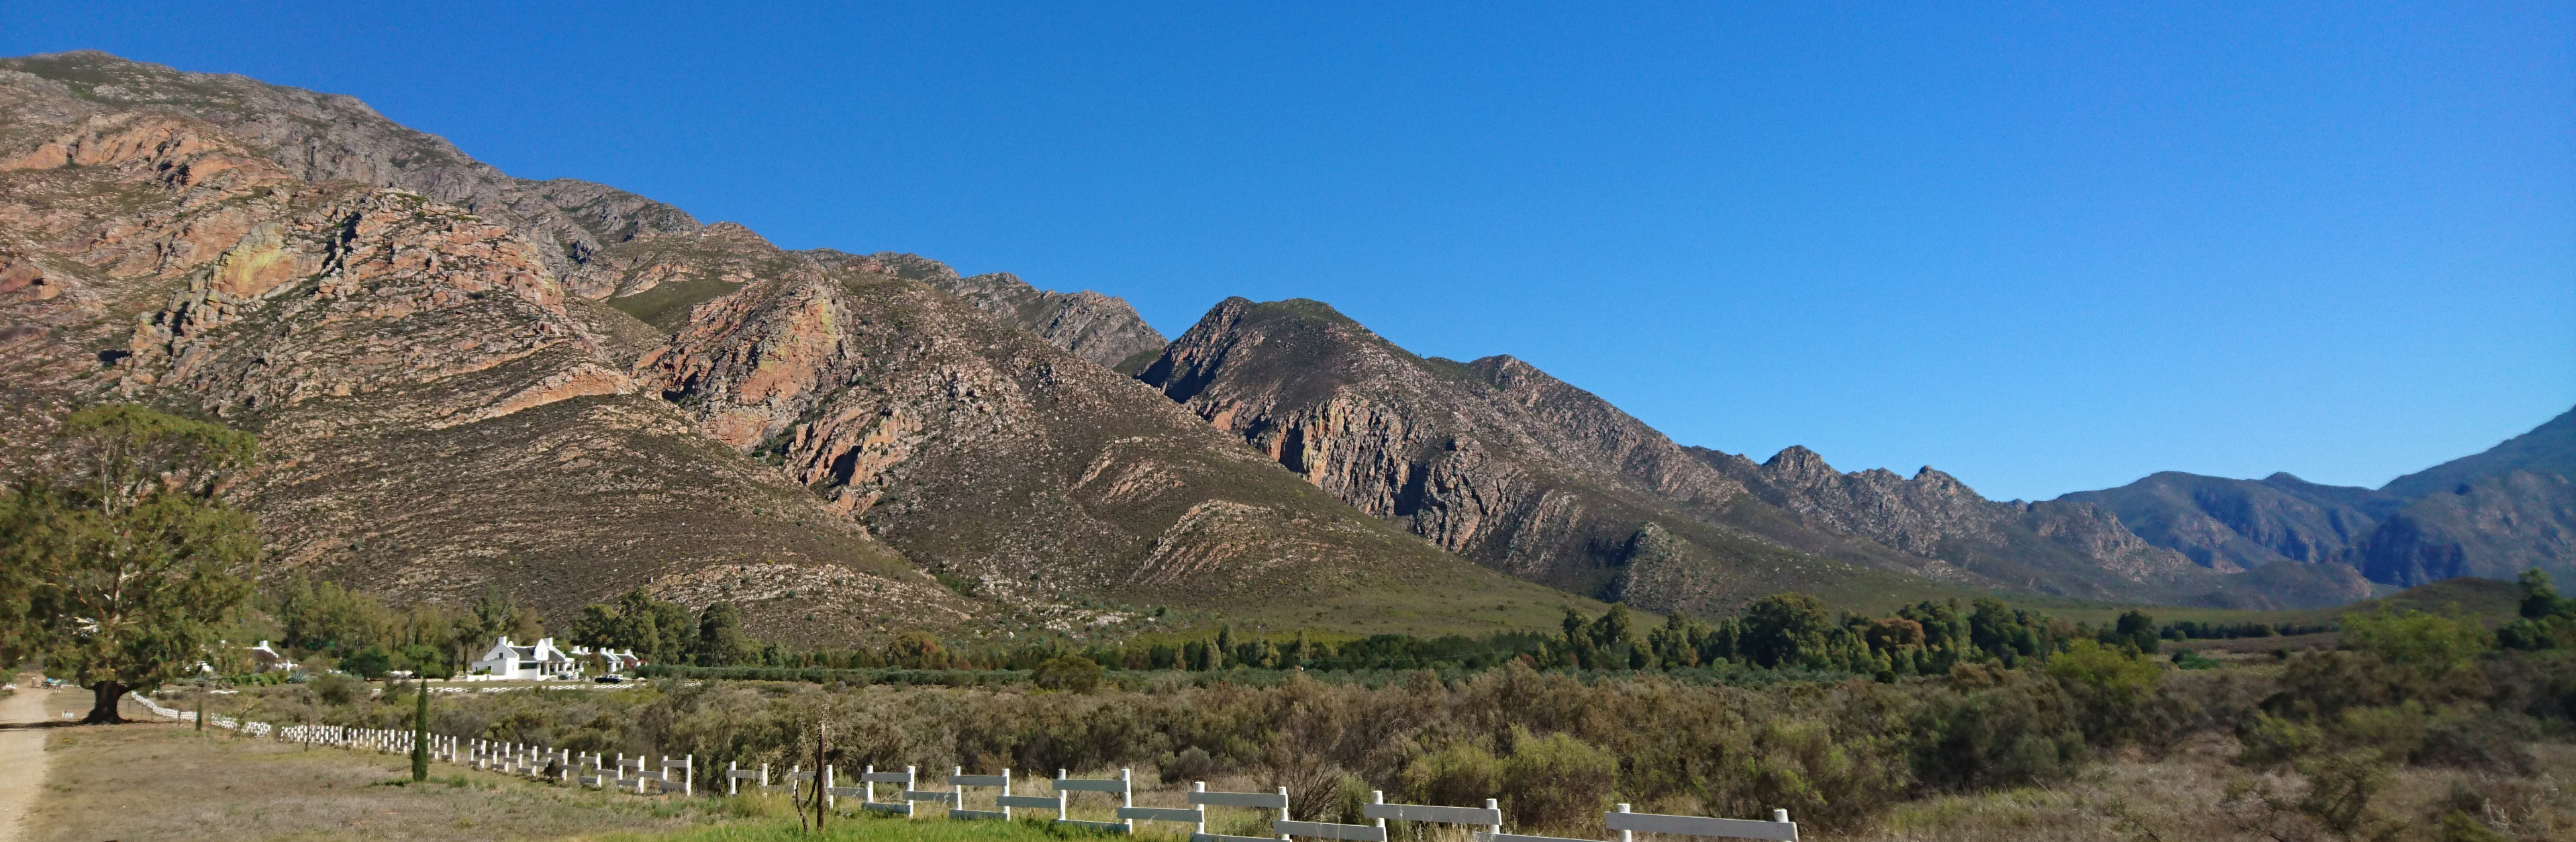 langeberg-mountains-south-africa